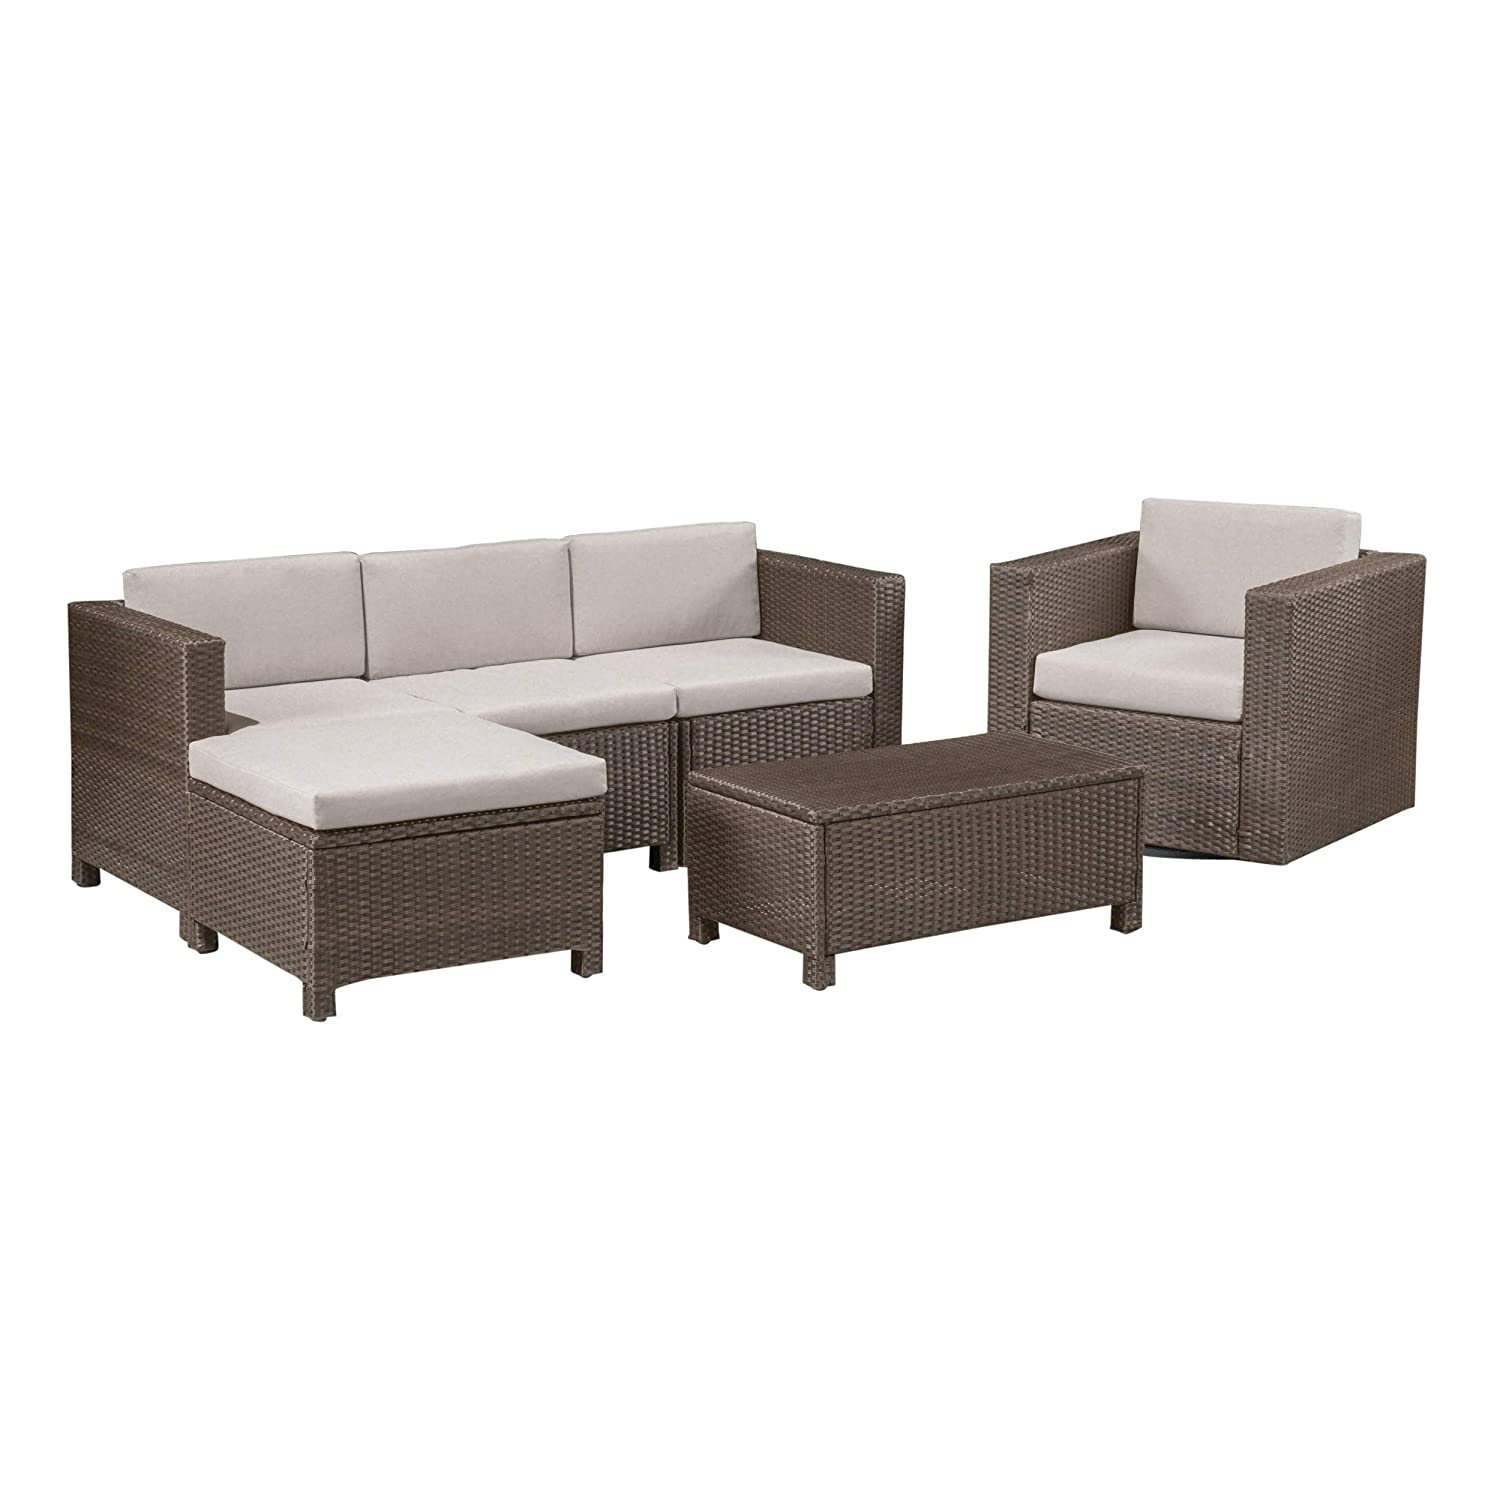 Amazon.com : Buzz Outdoor 4 Seater Wicker L-Shaped Sectional Sofa ...